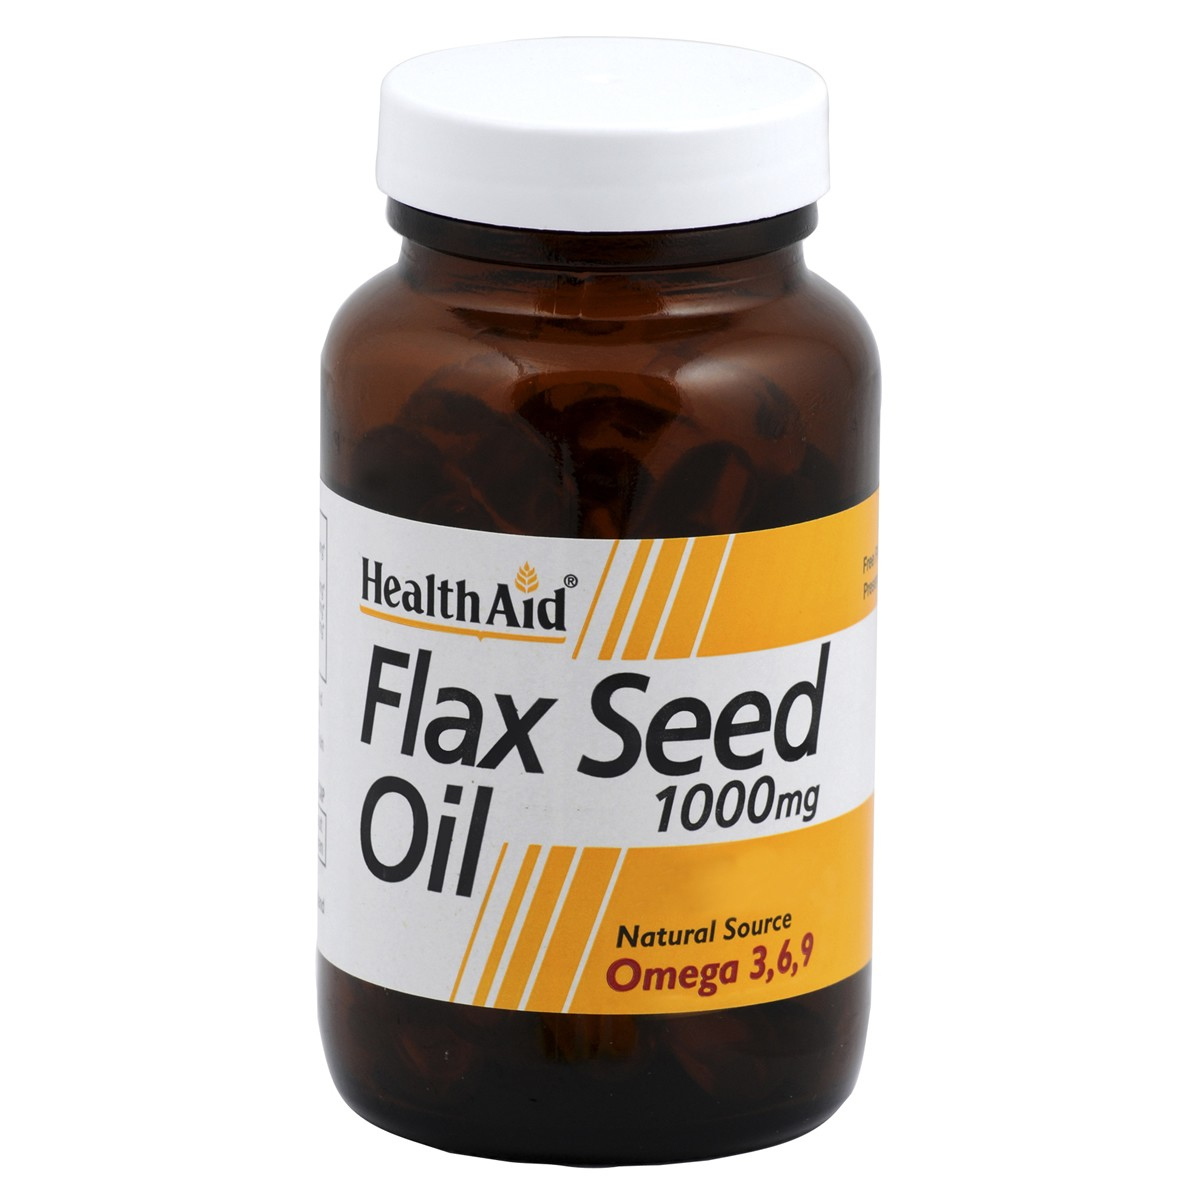 HealthAid Flaxseed Oil 1000mg Capsules